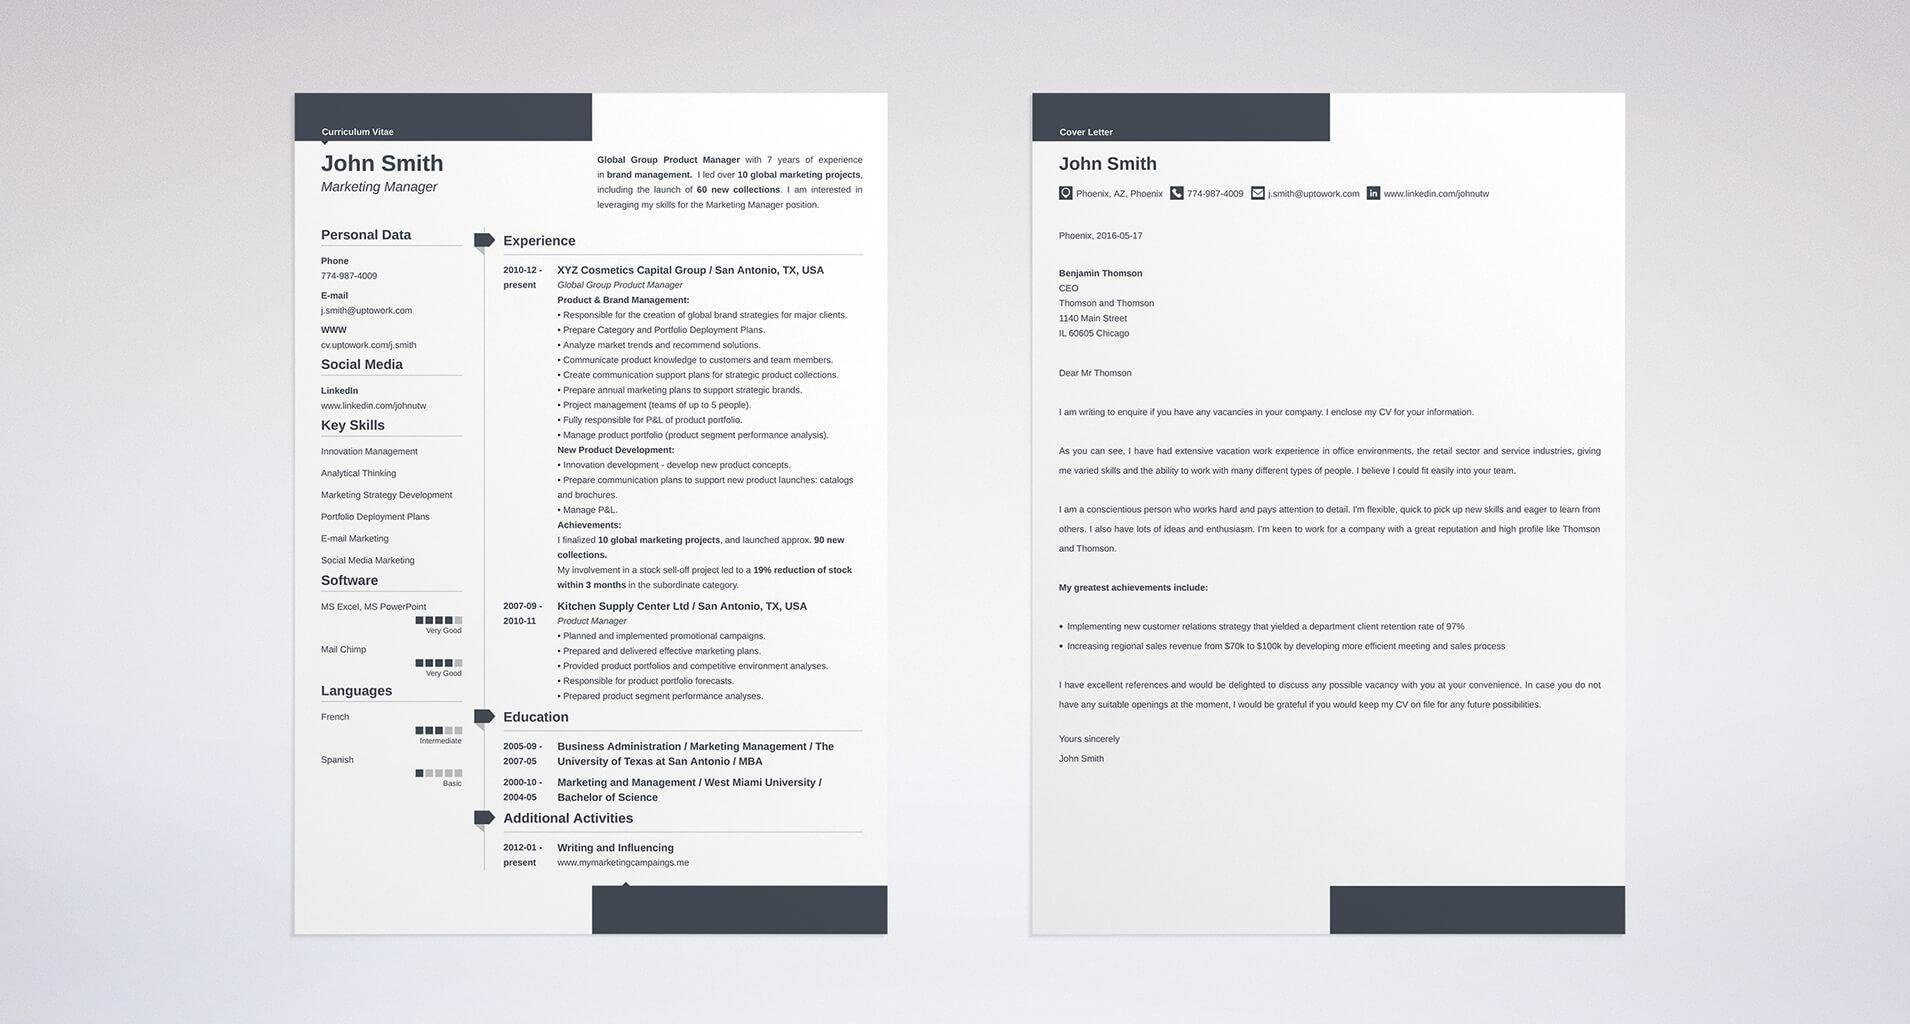 Service Industry Resume Template - Entry Level Resume Sample and Plete Guide [ 20 Examples]